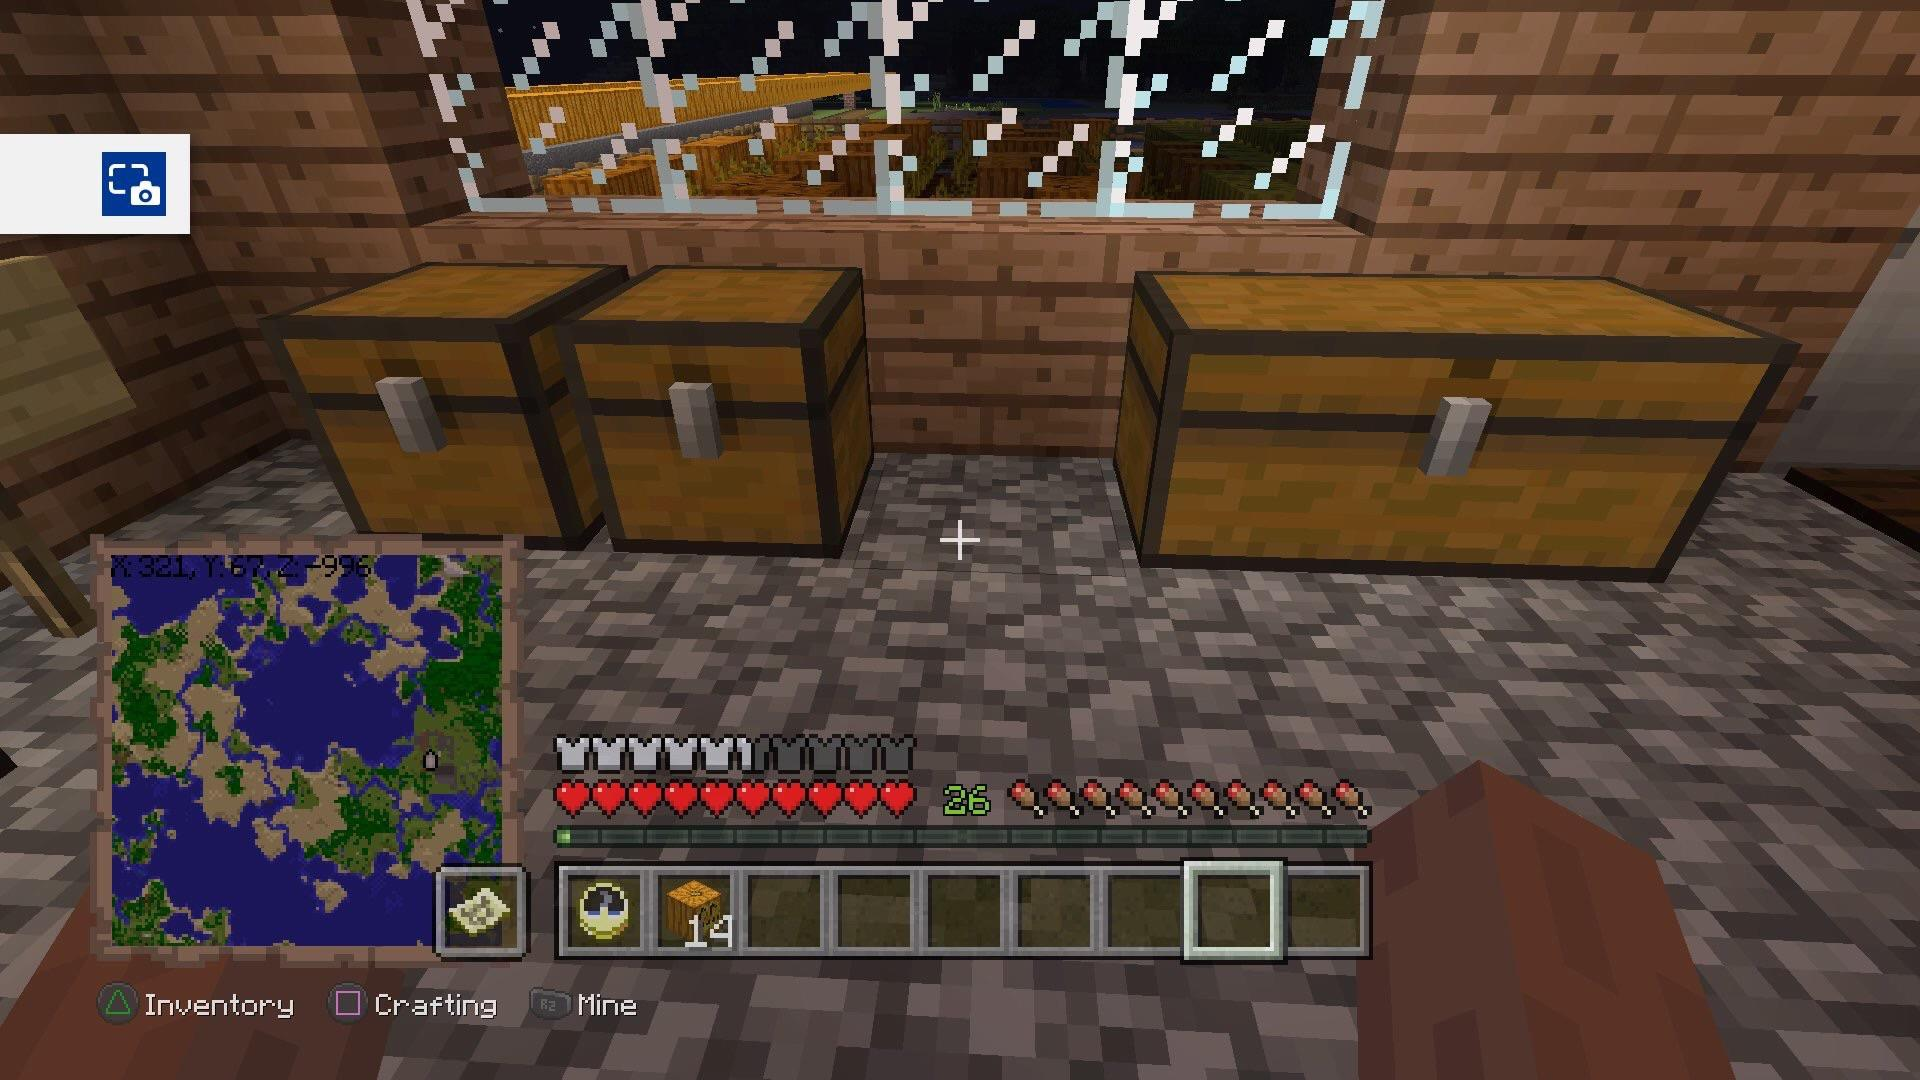 How to make a chest in minecraft